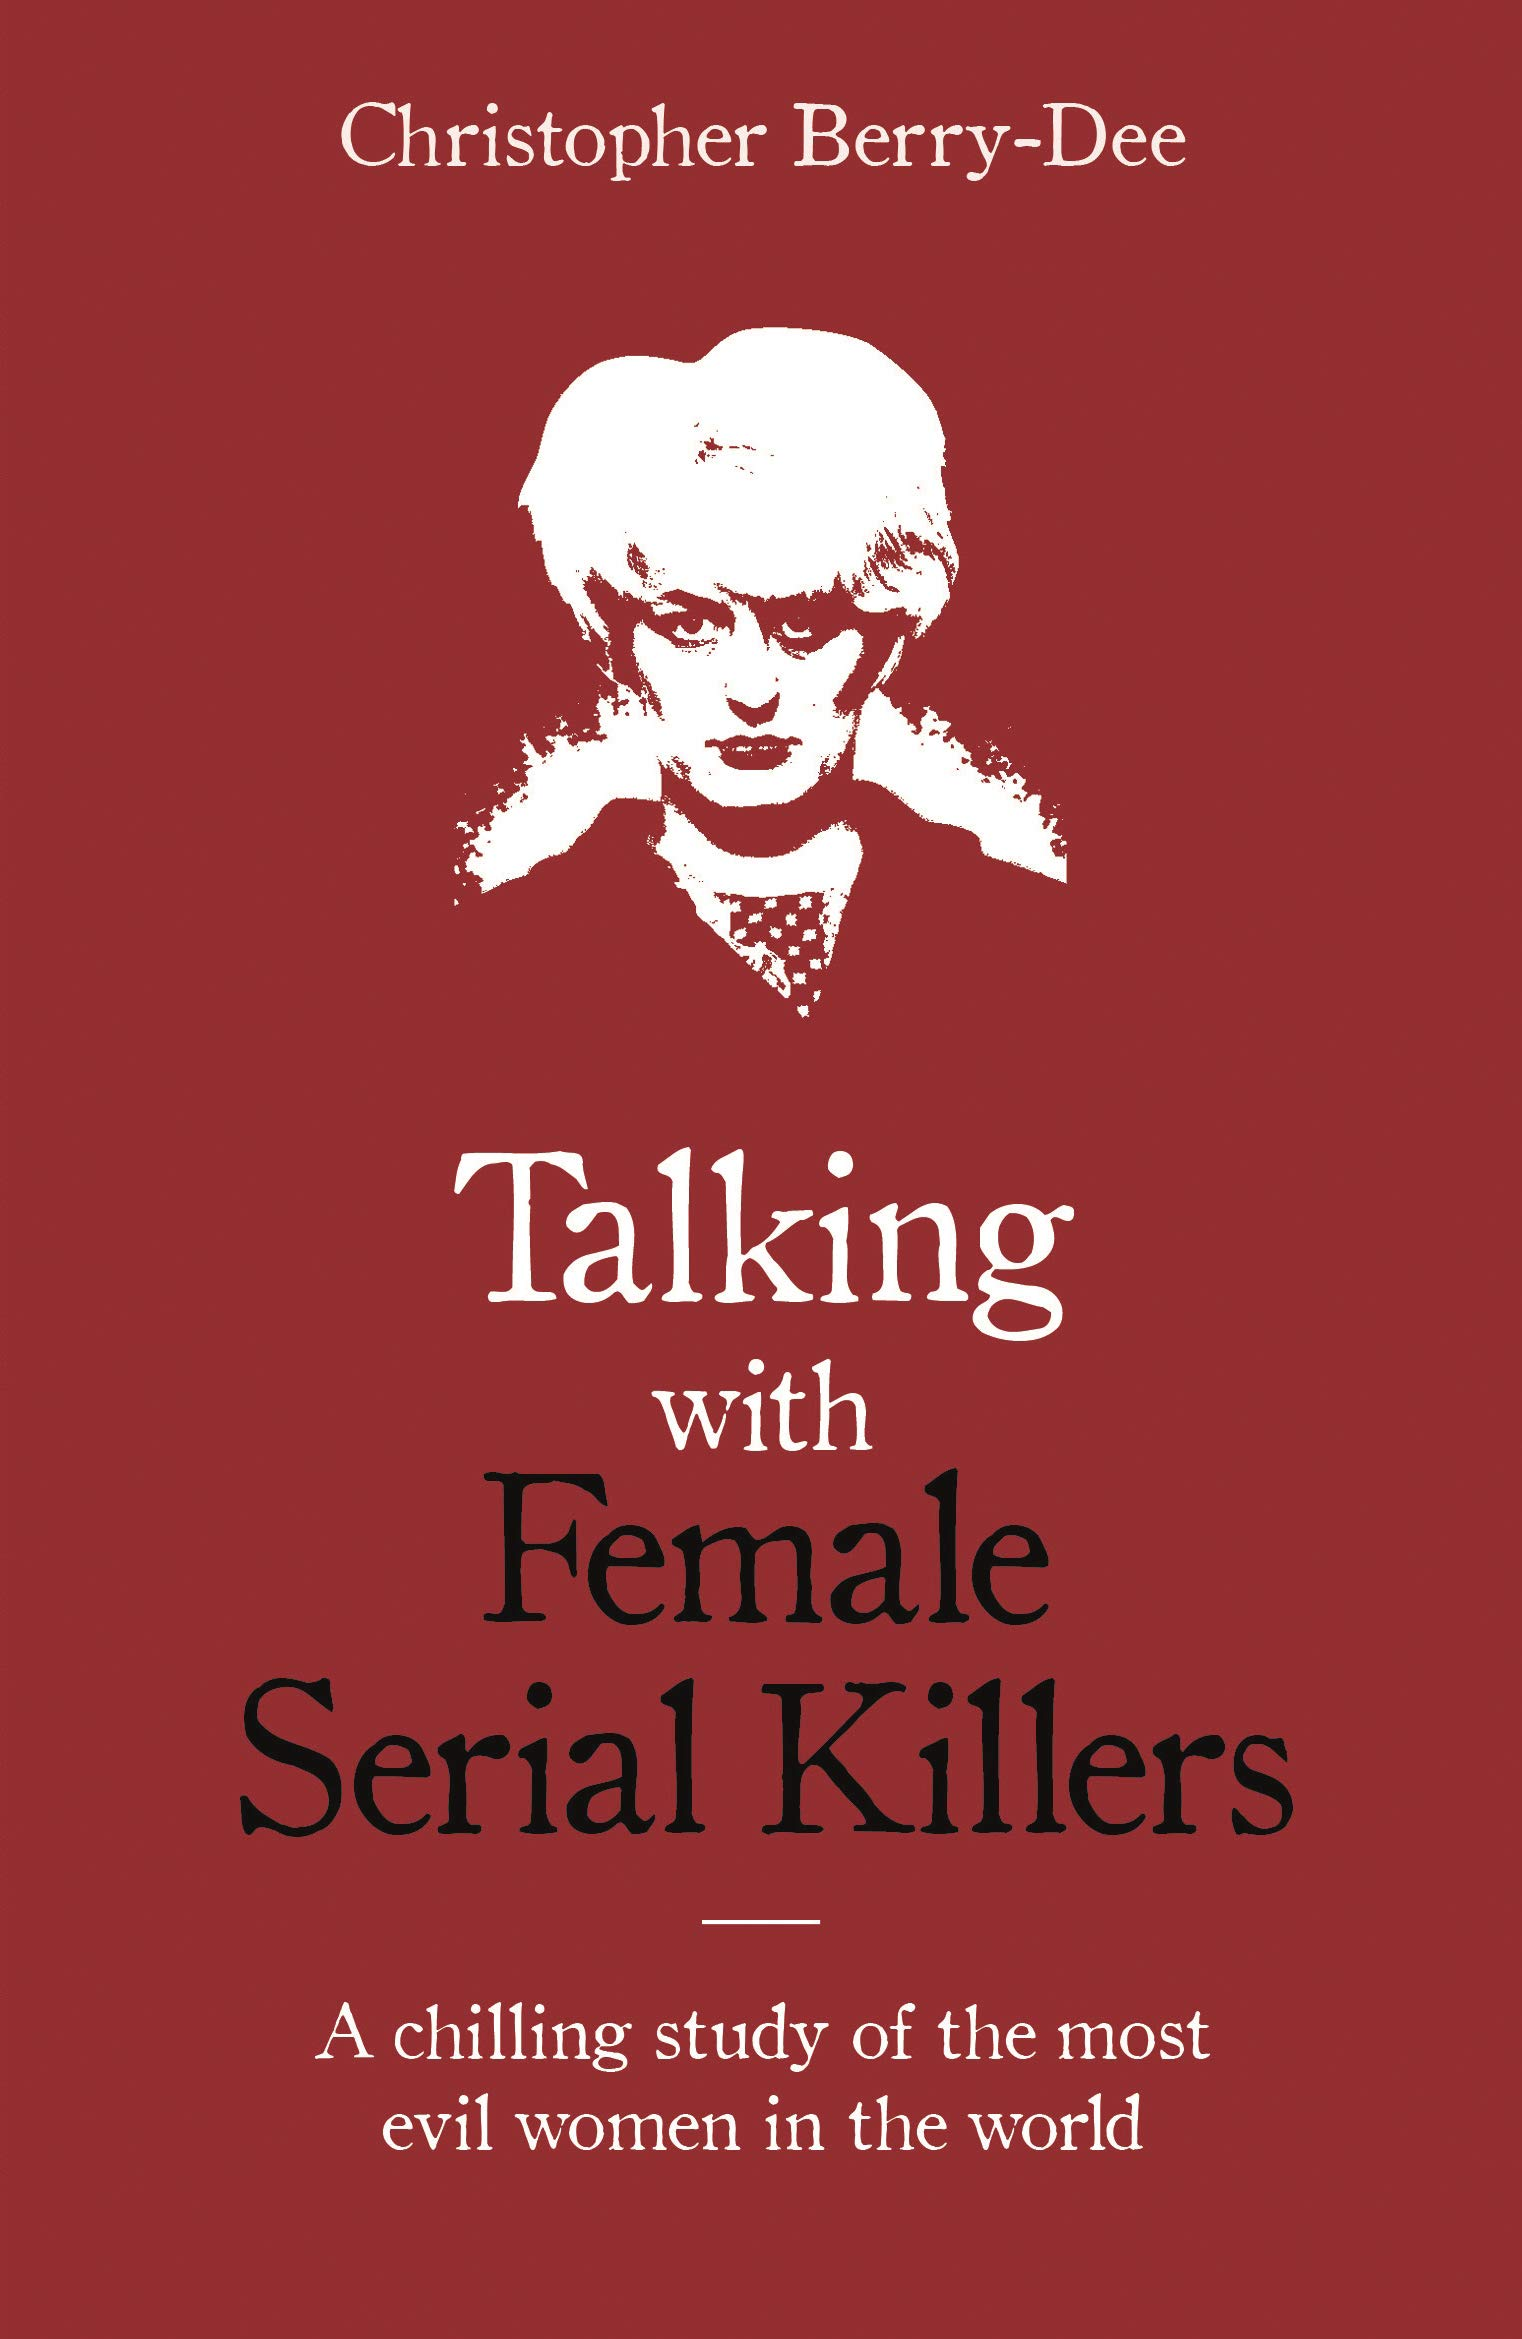 Talking with Female Serial Killers - A chilling study of the most